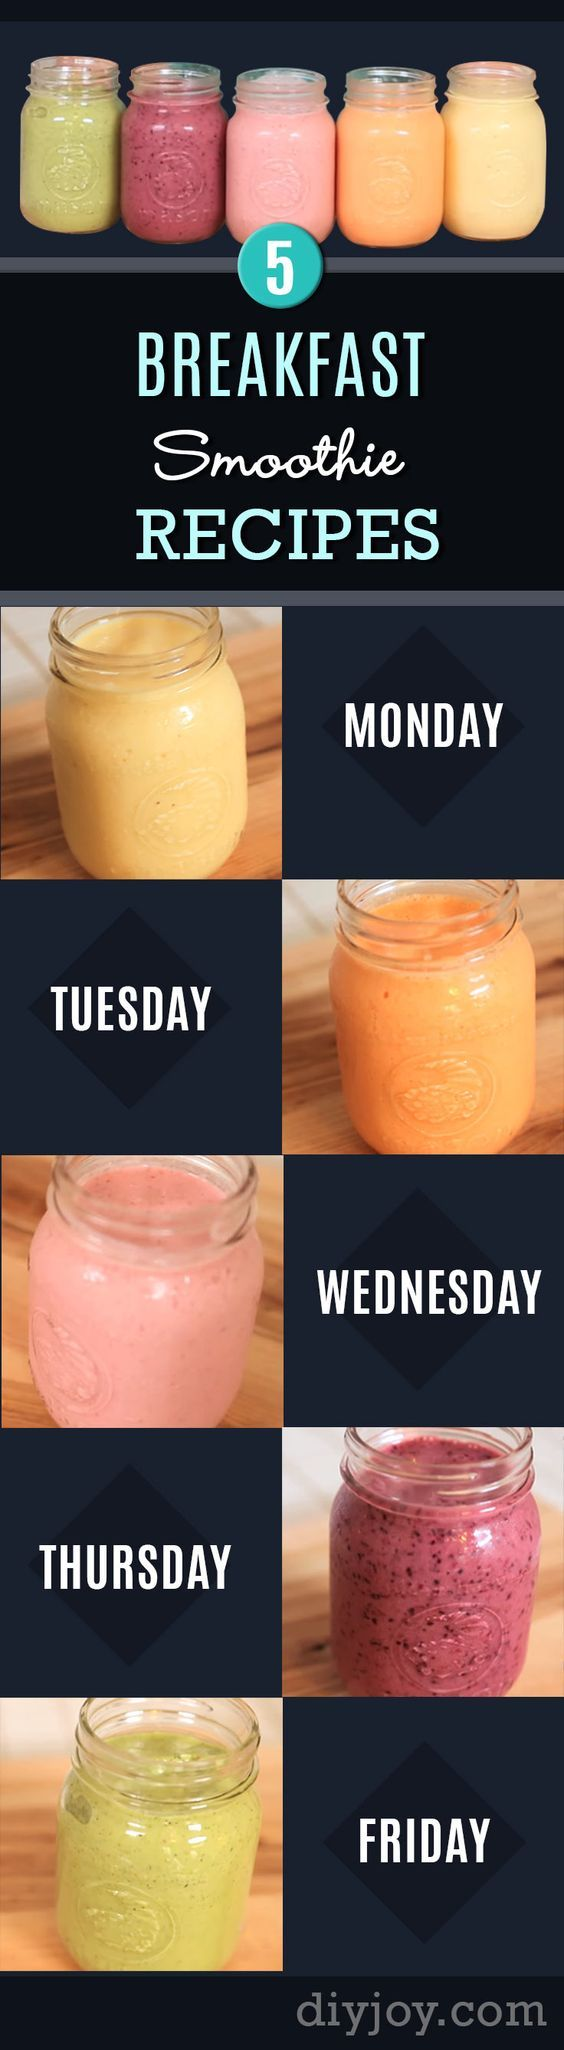 Healthy smoothie recipes and easy ideas perfect for breakfast, energy. Low calorie and high protein recipes for weightloss and to lose weight. Simple homemade recipe ideas that kids love. | Monday To Friday – 5 Ultimate Breakfast Smoothie Recipes! | http://diyjoy.com/healthy-smoothie-recipes: